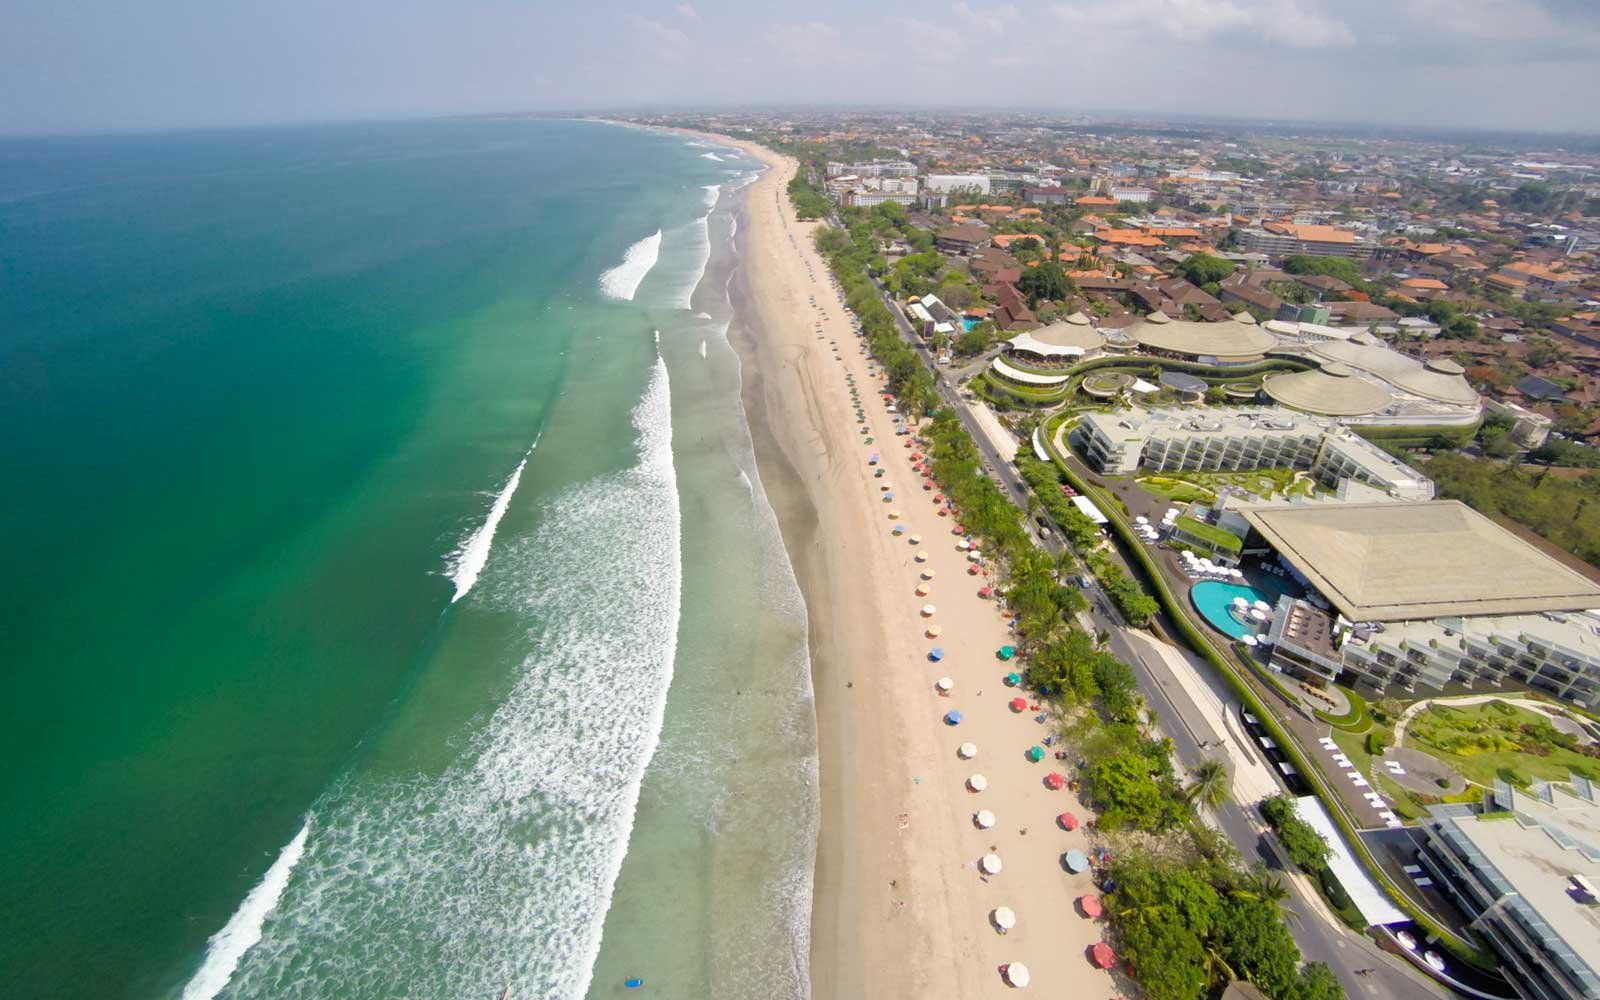 Kuta Beach is the most famous beach, also the most popular and renowned place in Bali.